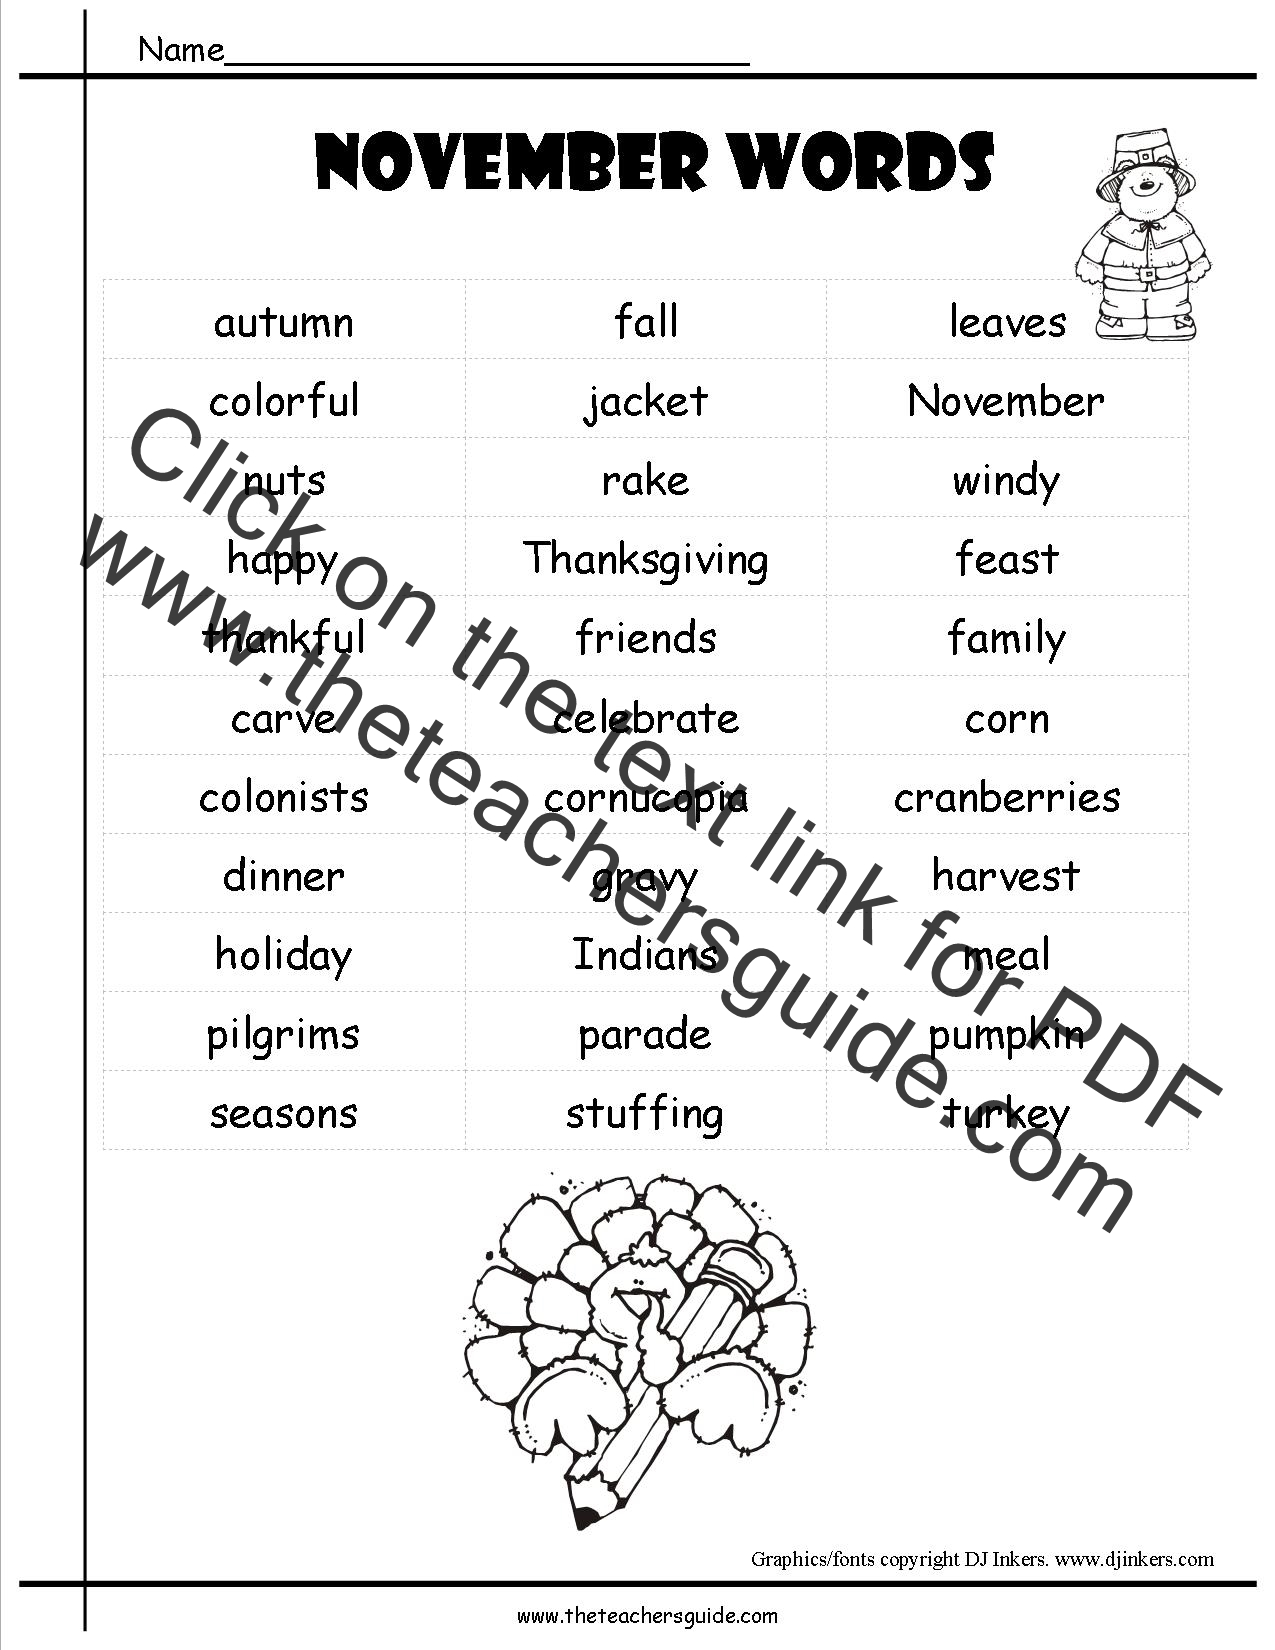 Spanish Word Coloring Pages In Numbers Archives Mente Beta Most Bible